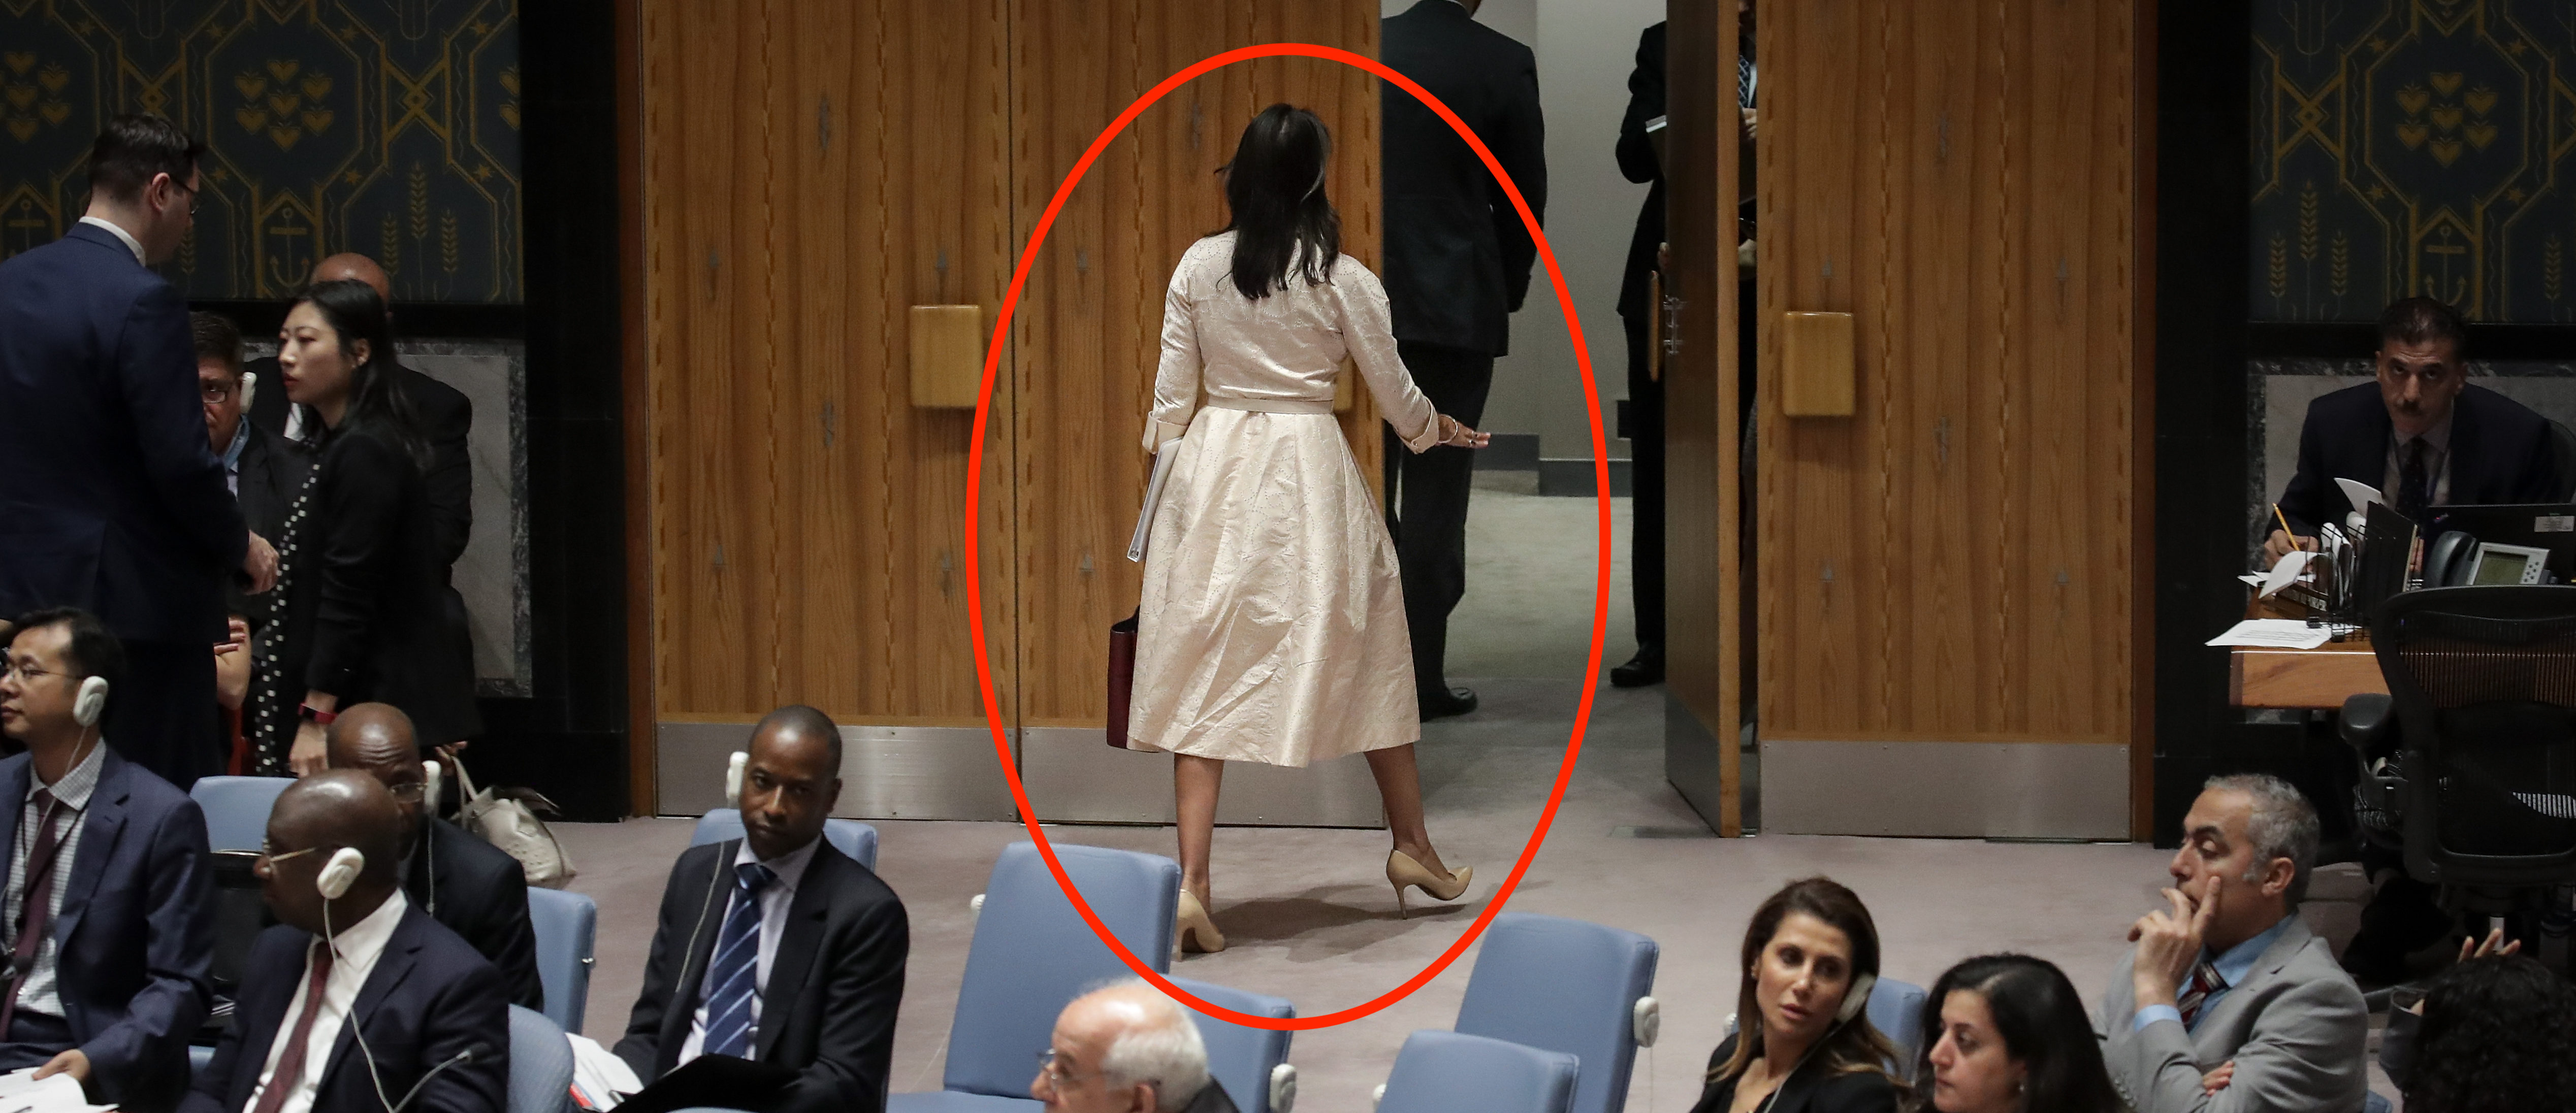 When The Palestinians Blamed Israel For Violence At The UN, Nikki Haley's Response Stuns The Room